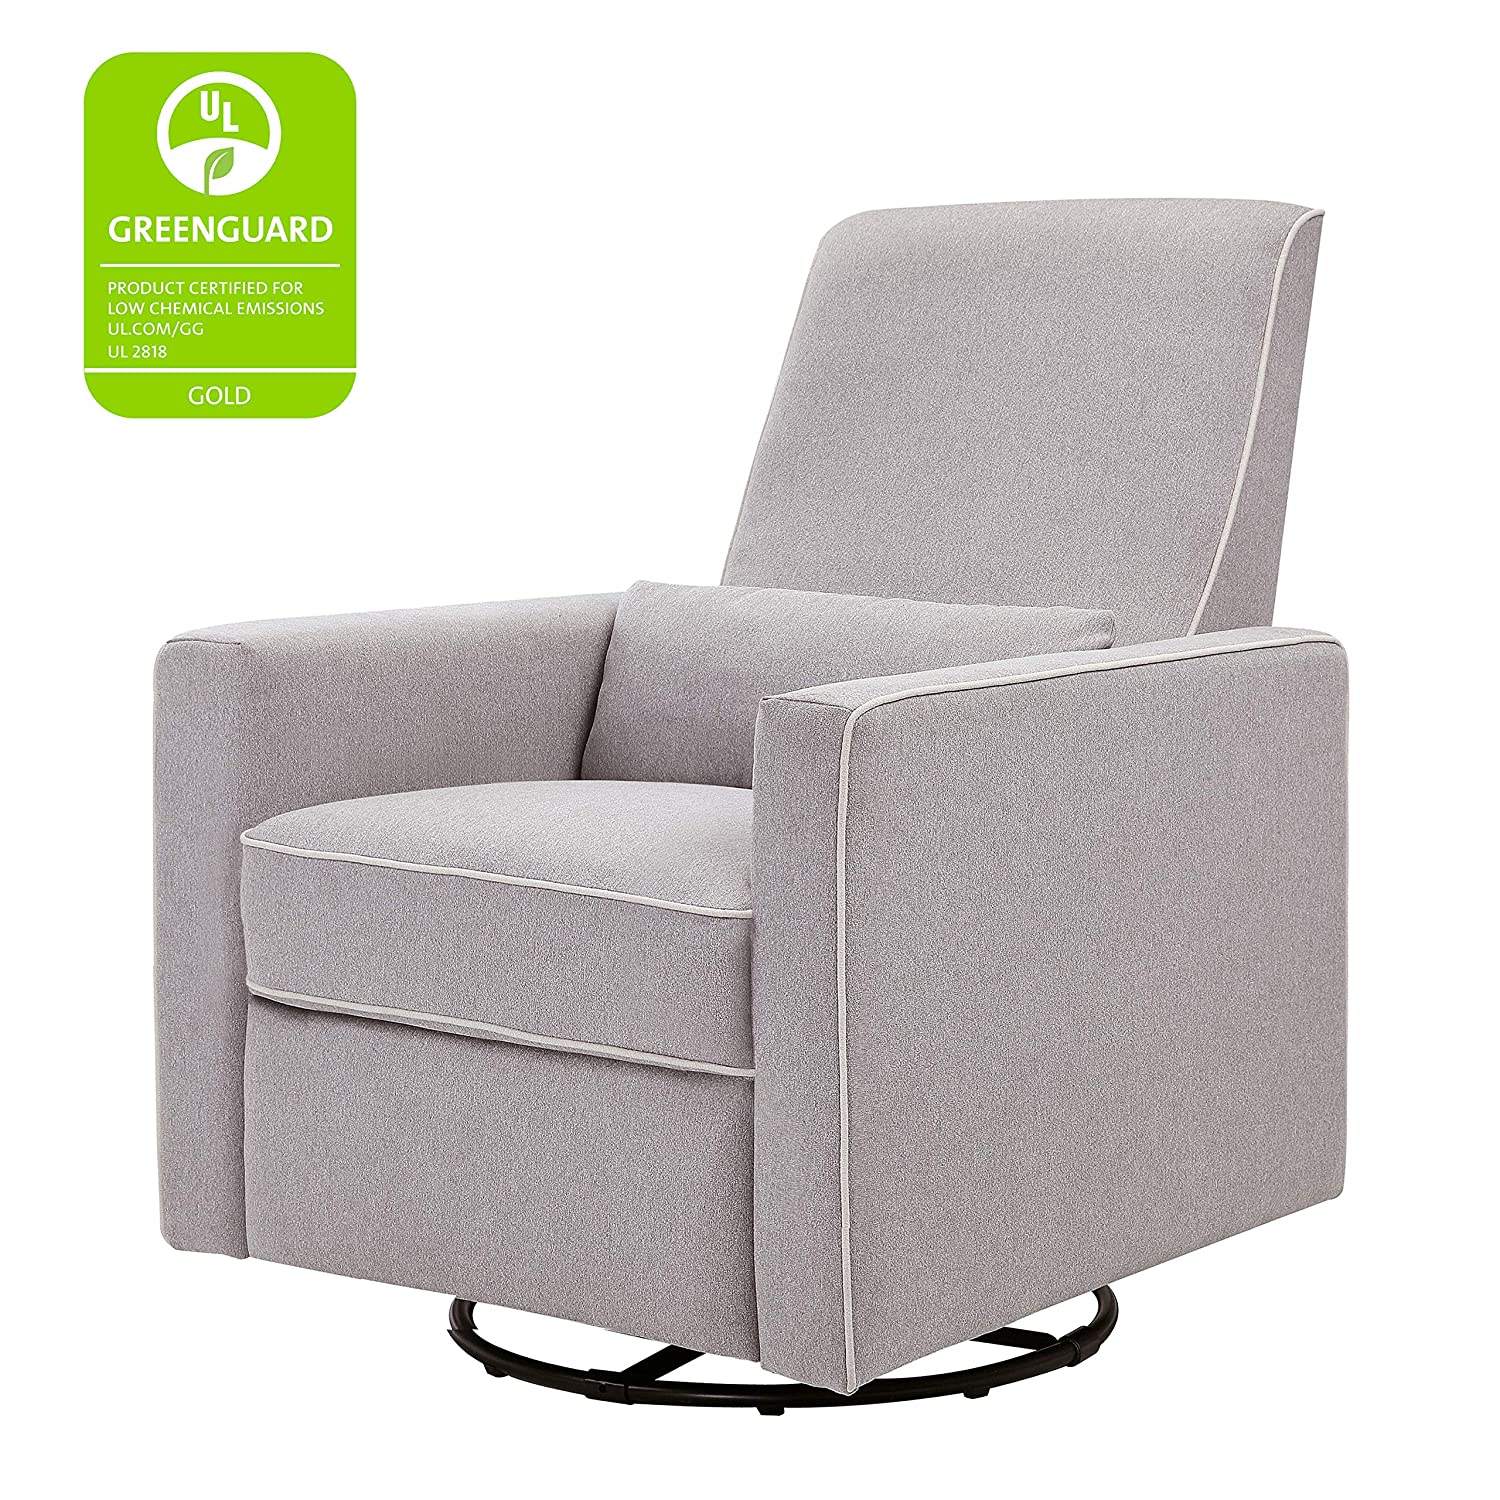 Pleasant Davinci Piper Upholstered Recliner And Swivel Glider Grey With Cream Piping Pdpeps Interior Chair Design Pdpepsorg